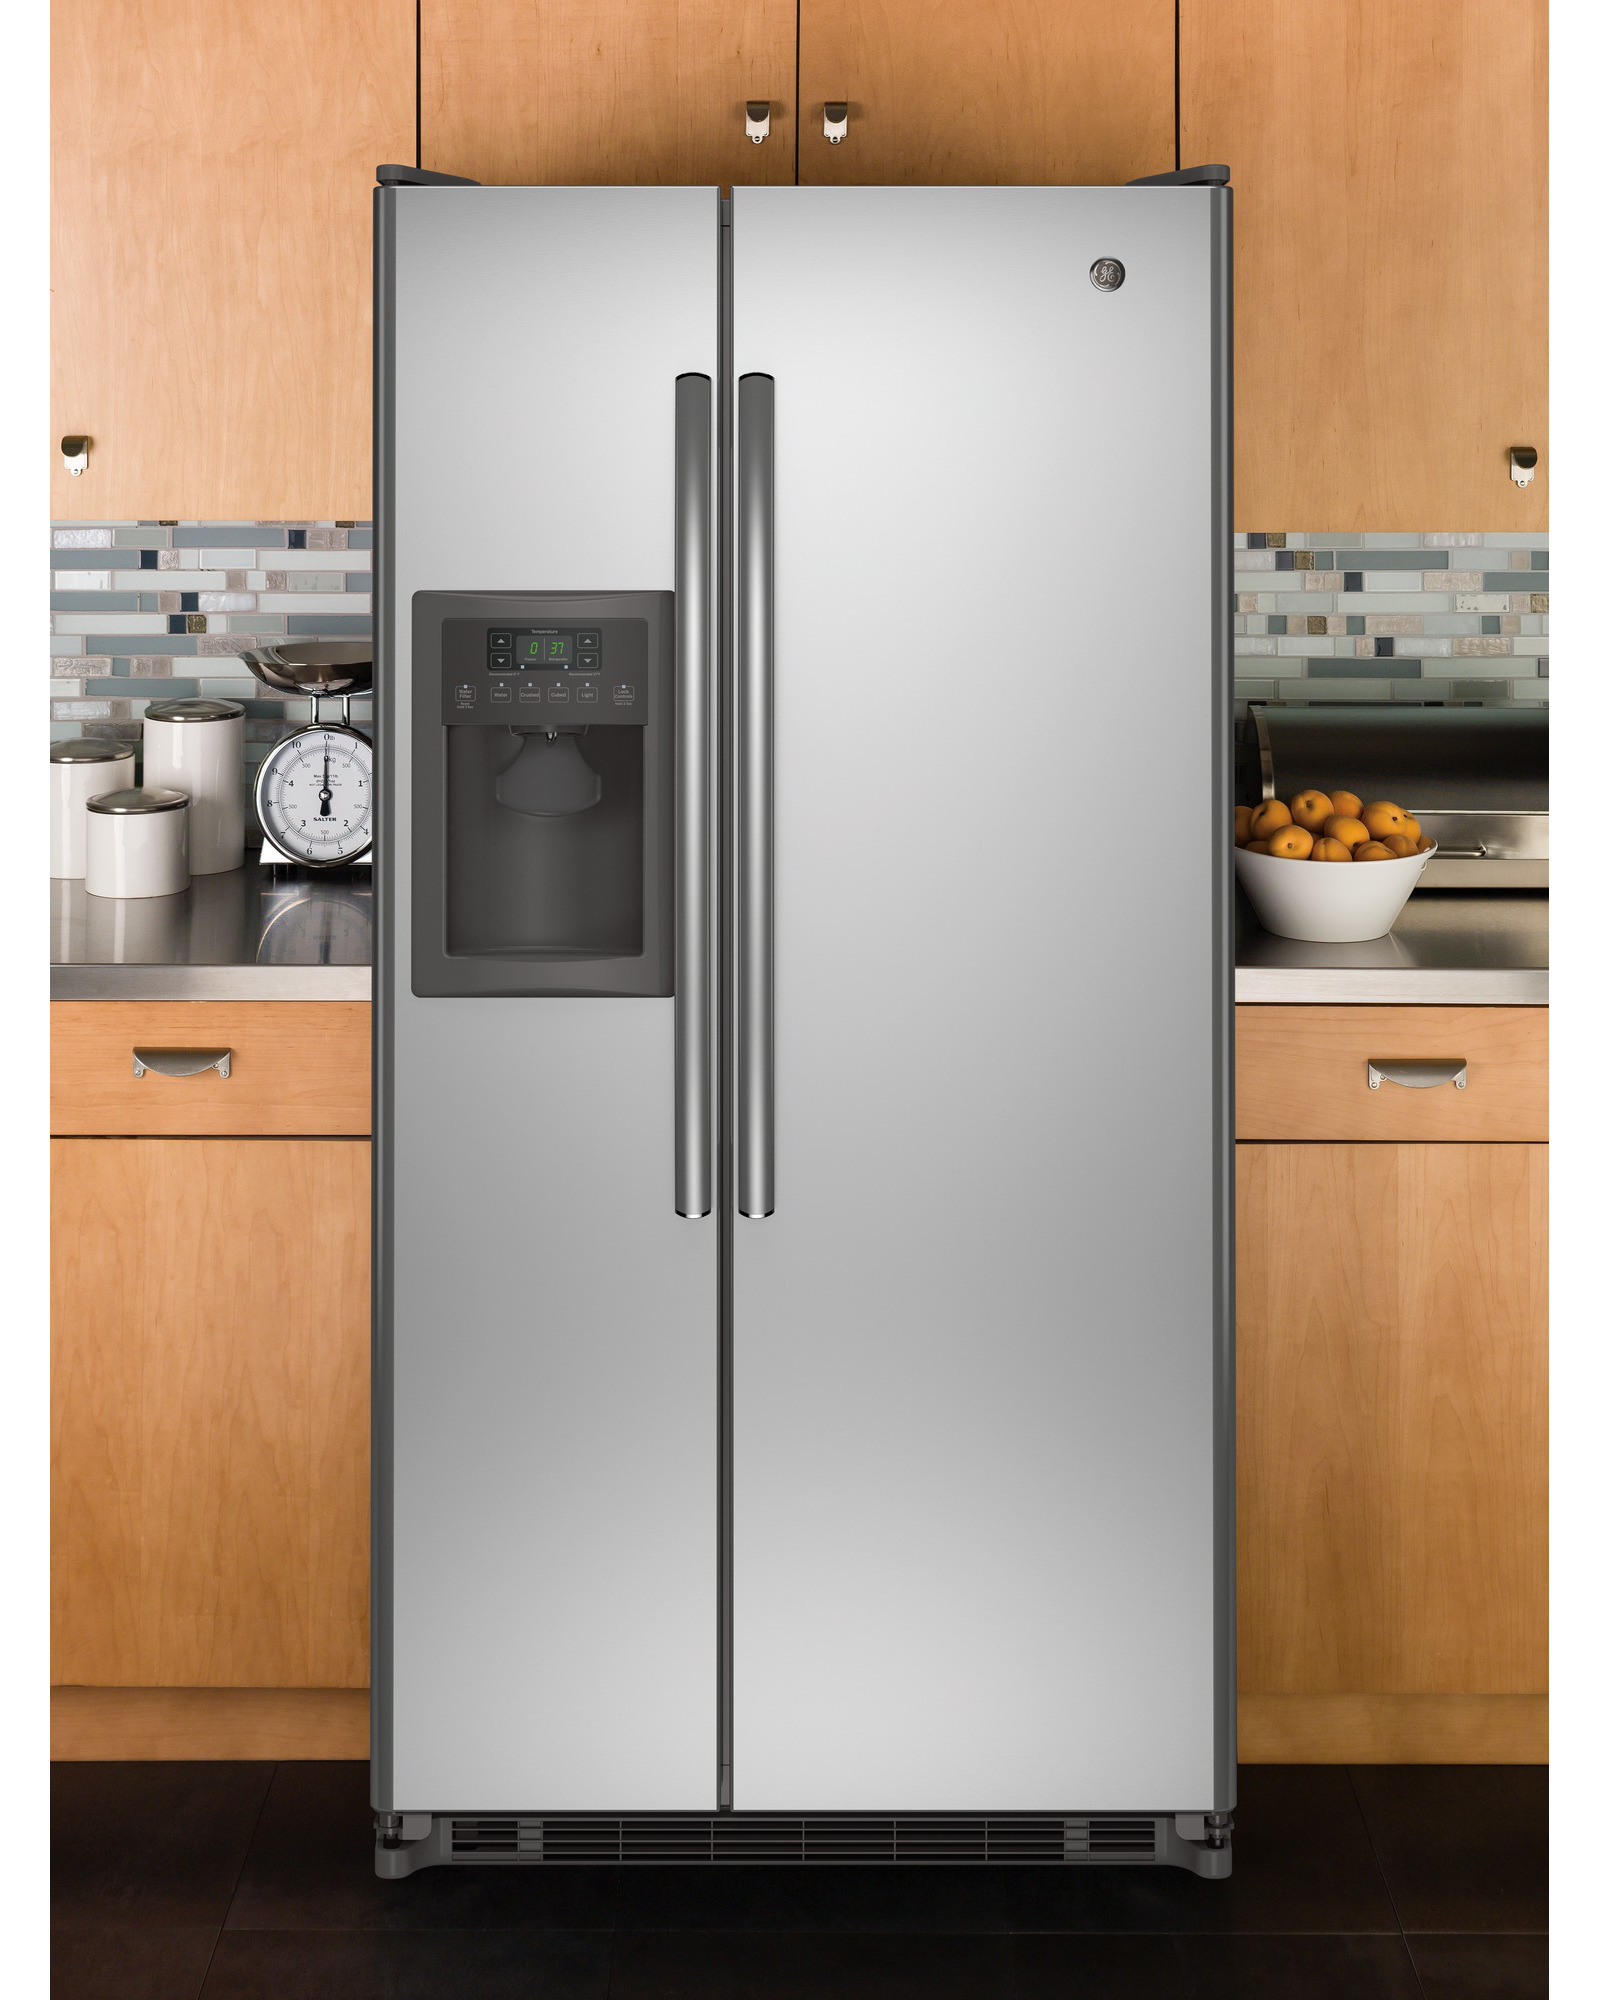 GE Appliances GSE22ESHSS 21.8 cu. ft. Side-by-Side Refrigerator - Stainless Steel